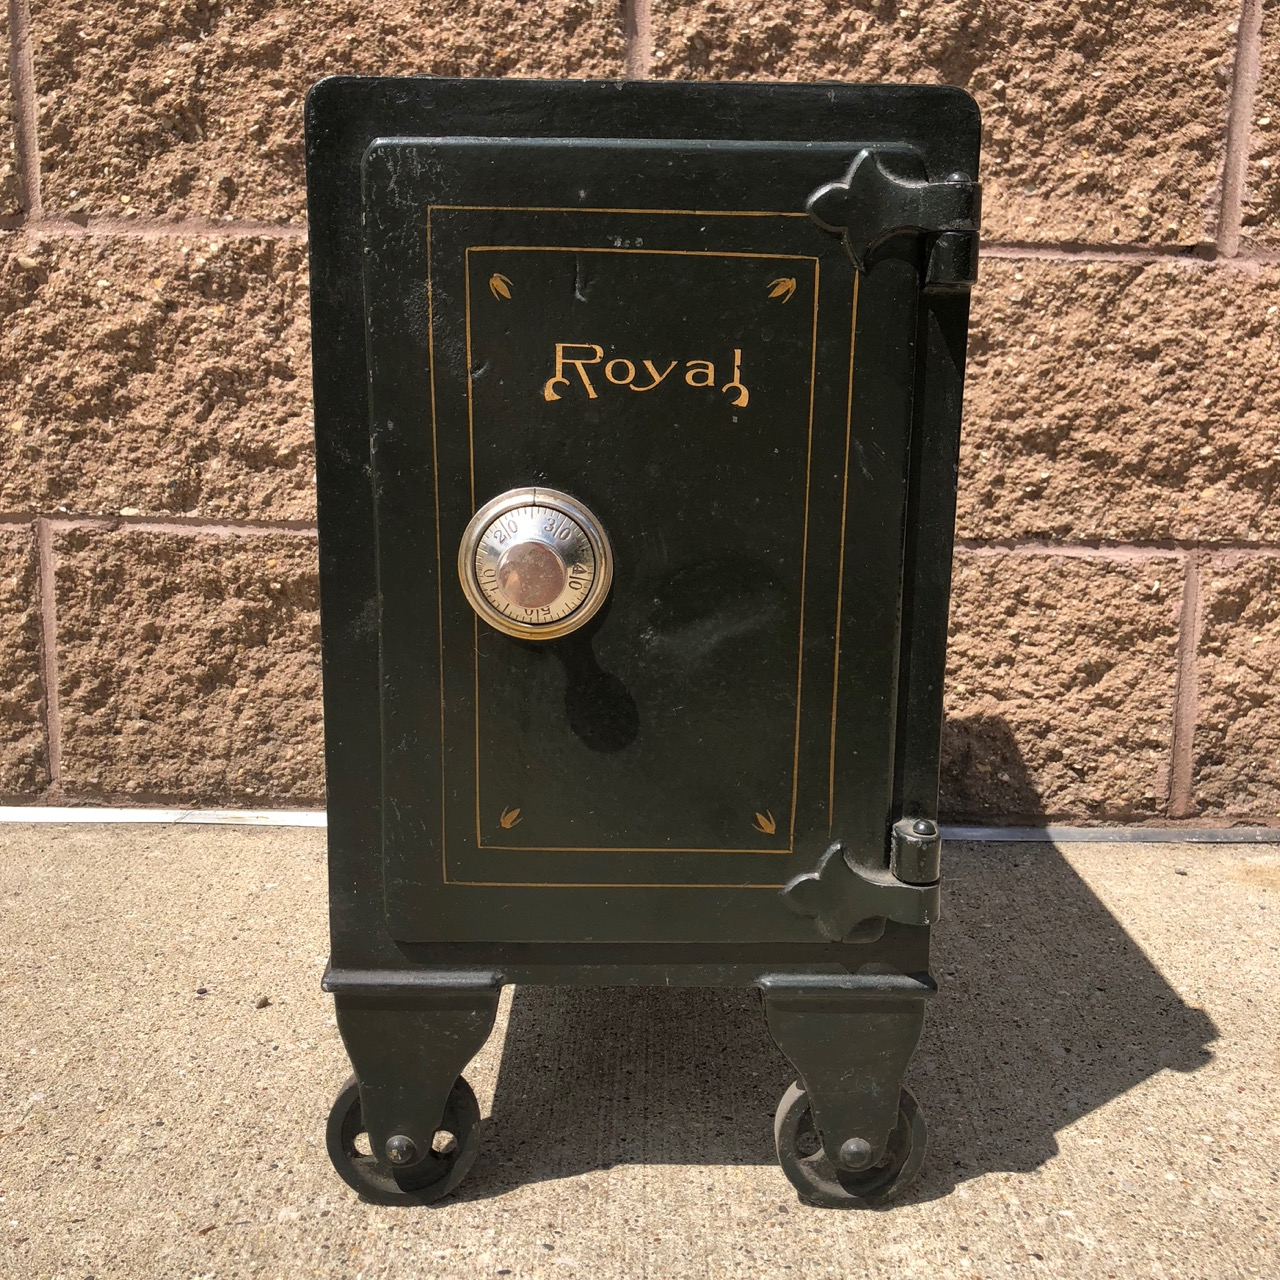 Click to view full size. - Buy, Sell Antique Safes Antique Safes For Sale Grand Rapids Michigan